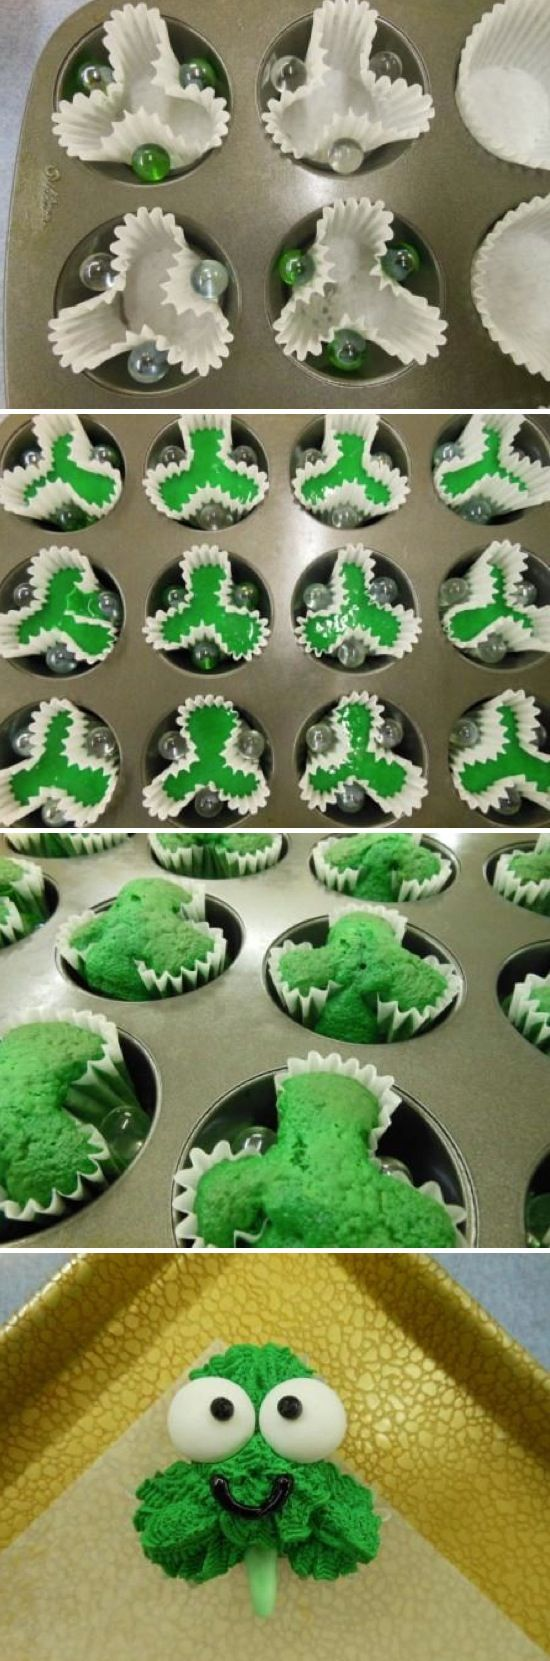 Shamrock Cupcakes...this might be the MOST adorable thing I have seen in a LONG time!  I'm so making these!!!!!!